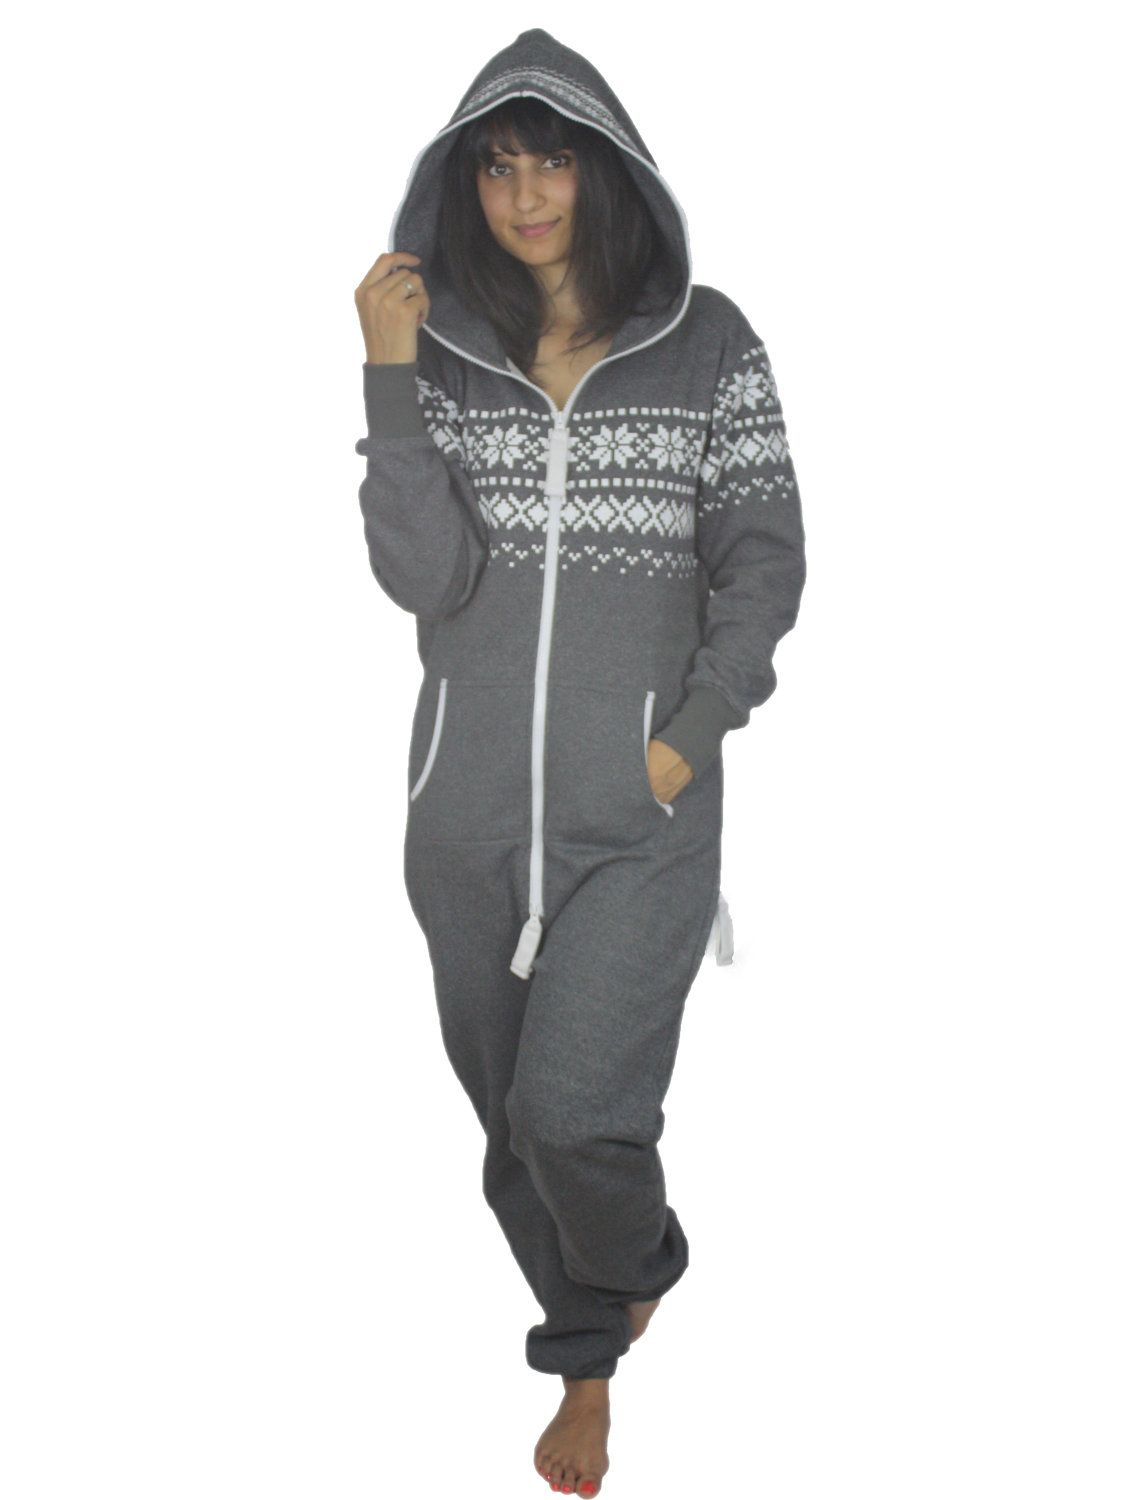 4261340e51a9a Adult Onesie Jumpsuit One Piece All In One tracksuit hoodie Pyjamas  Lazygrow Jump in. £50.00